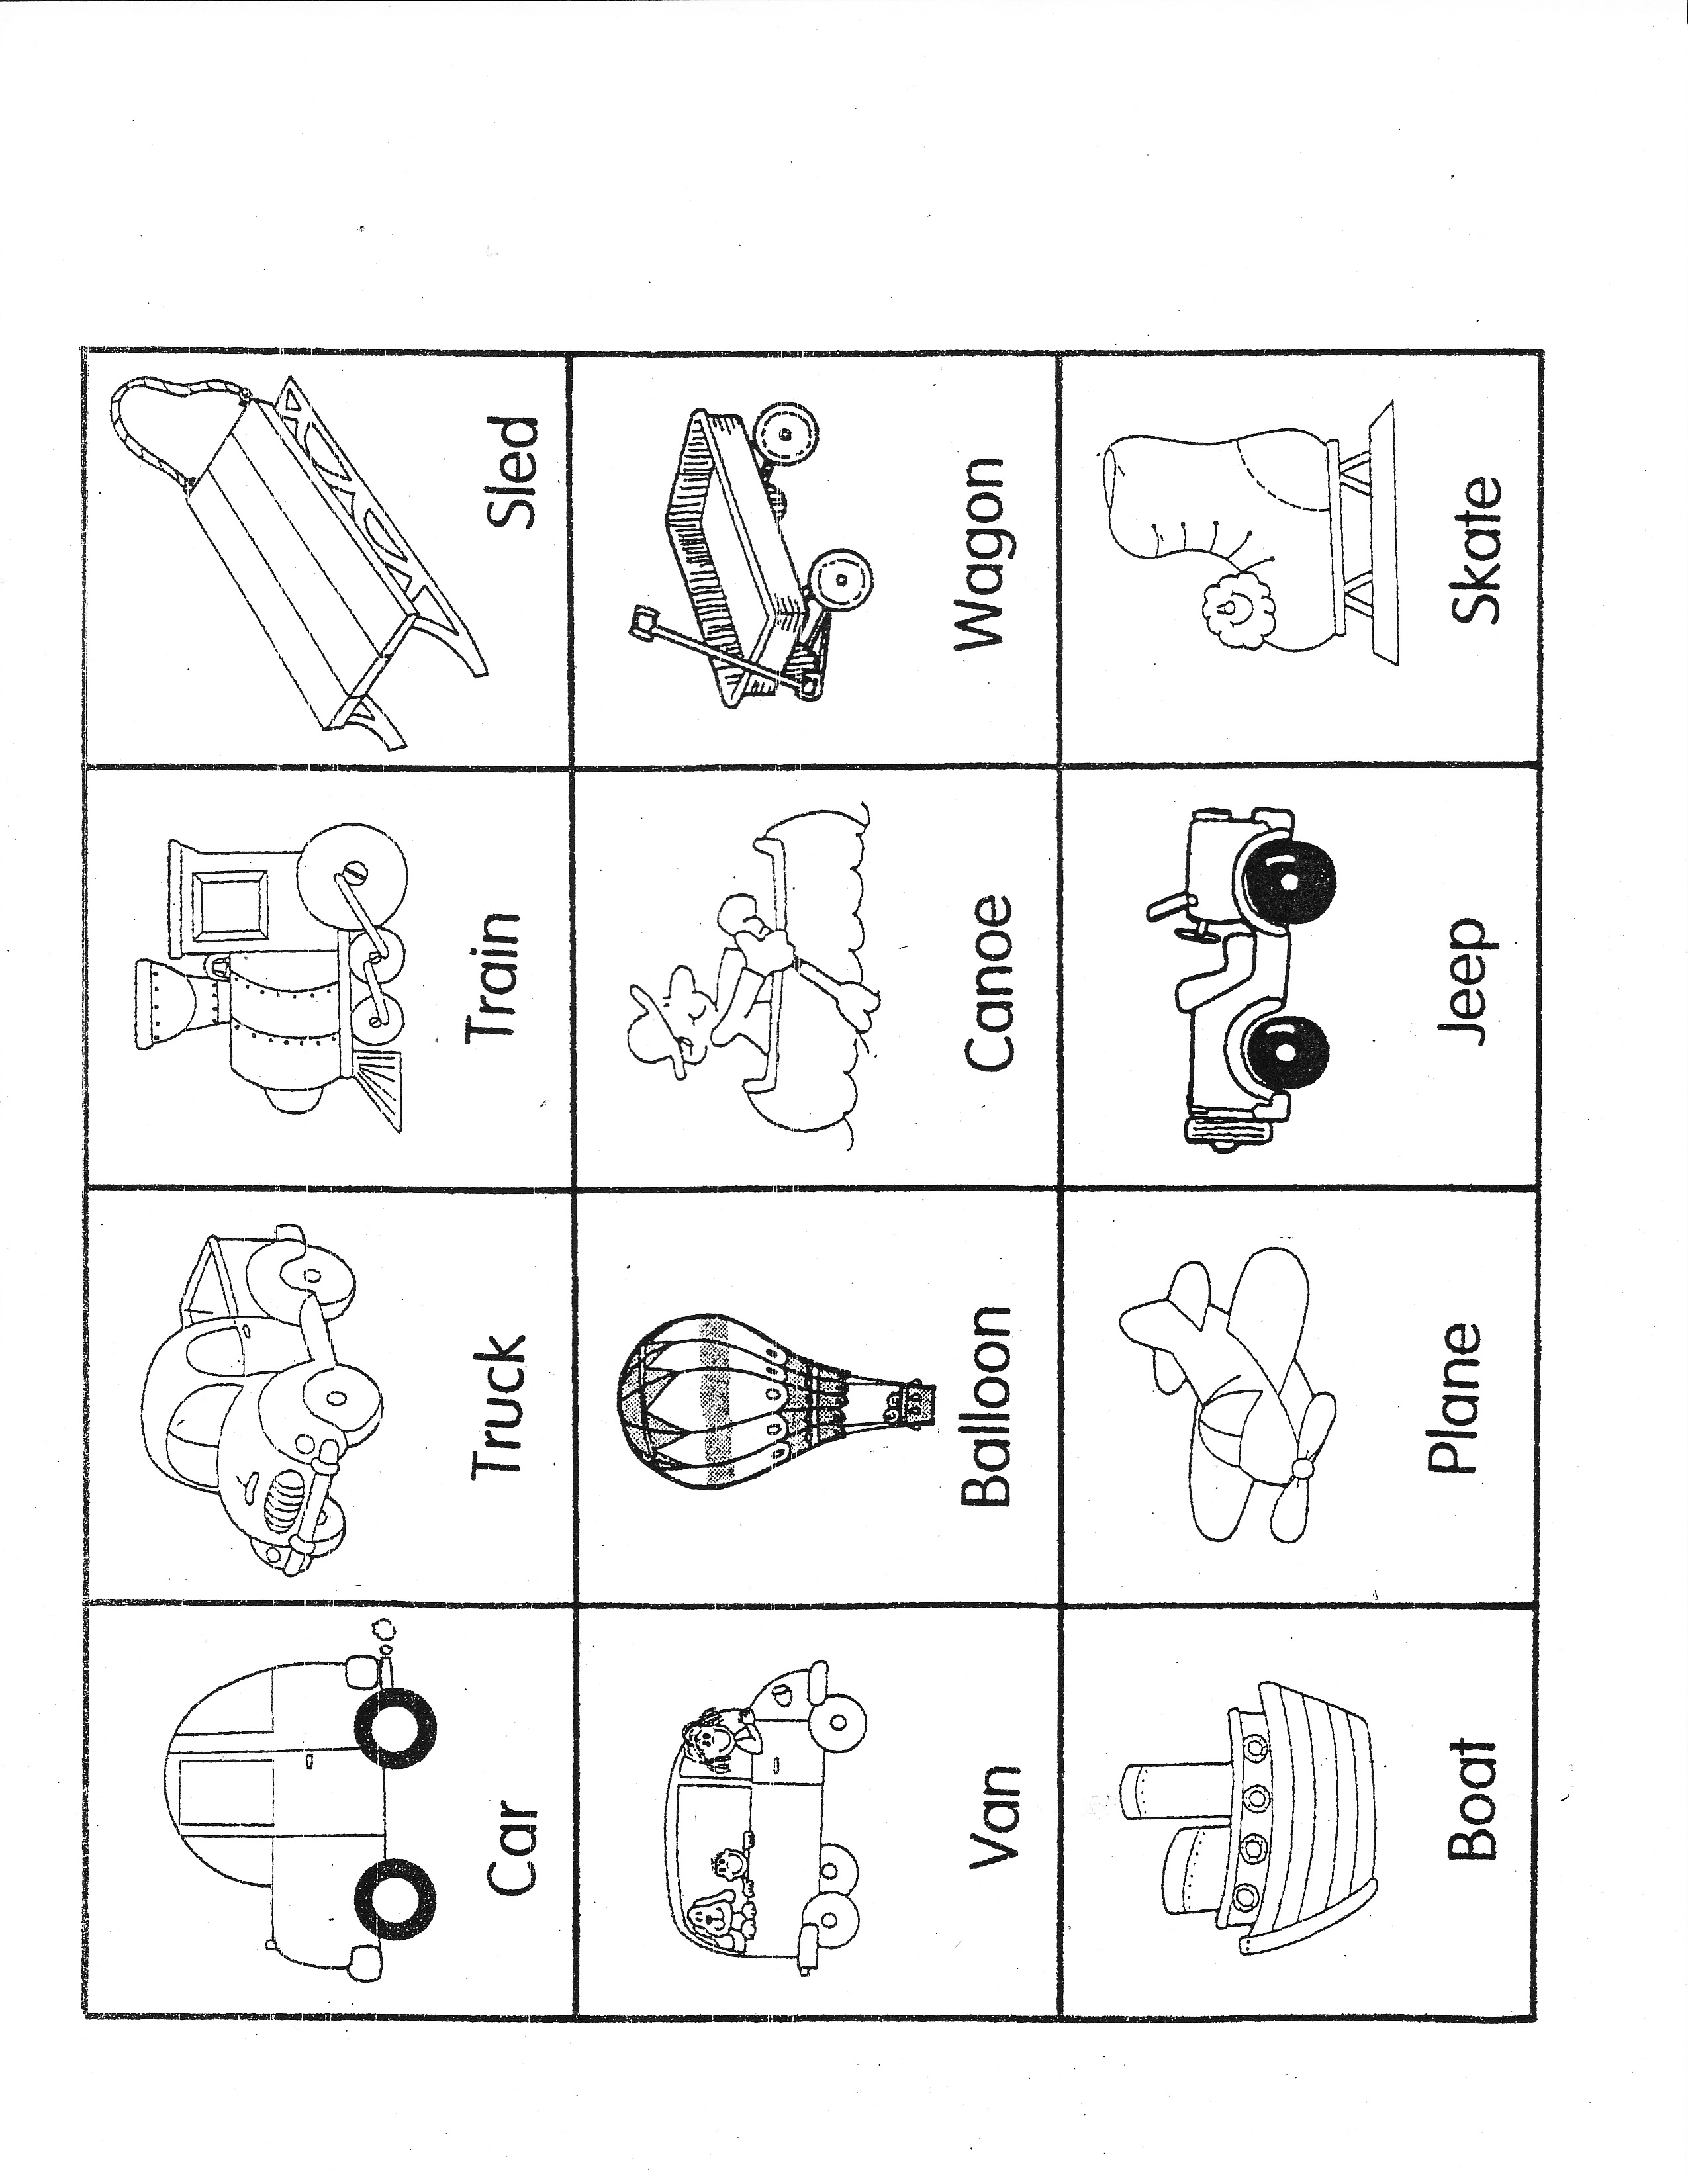 worksheet Rhyming Words Worksheet Kindergarten worksheet rhyming kindergarten mikyu free 1000 ideas about activities on pinterest words youll need to register with teachers pay download this kinderg